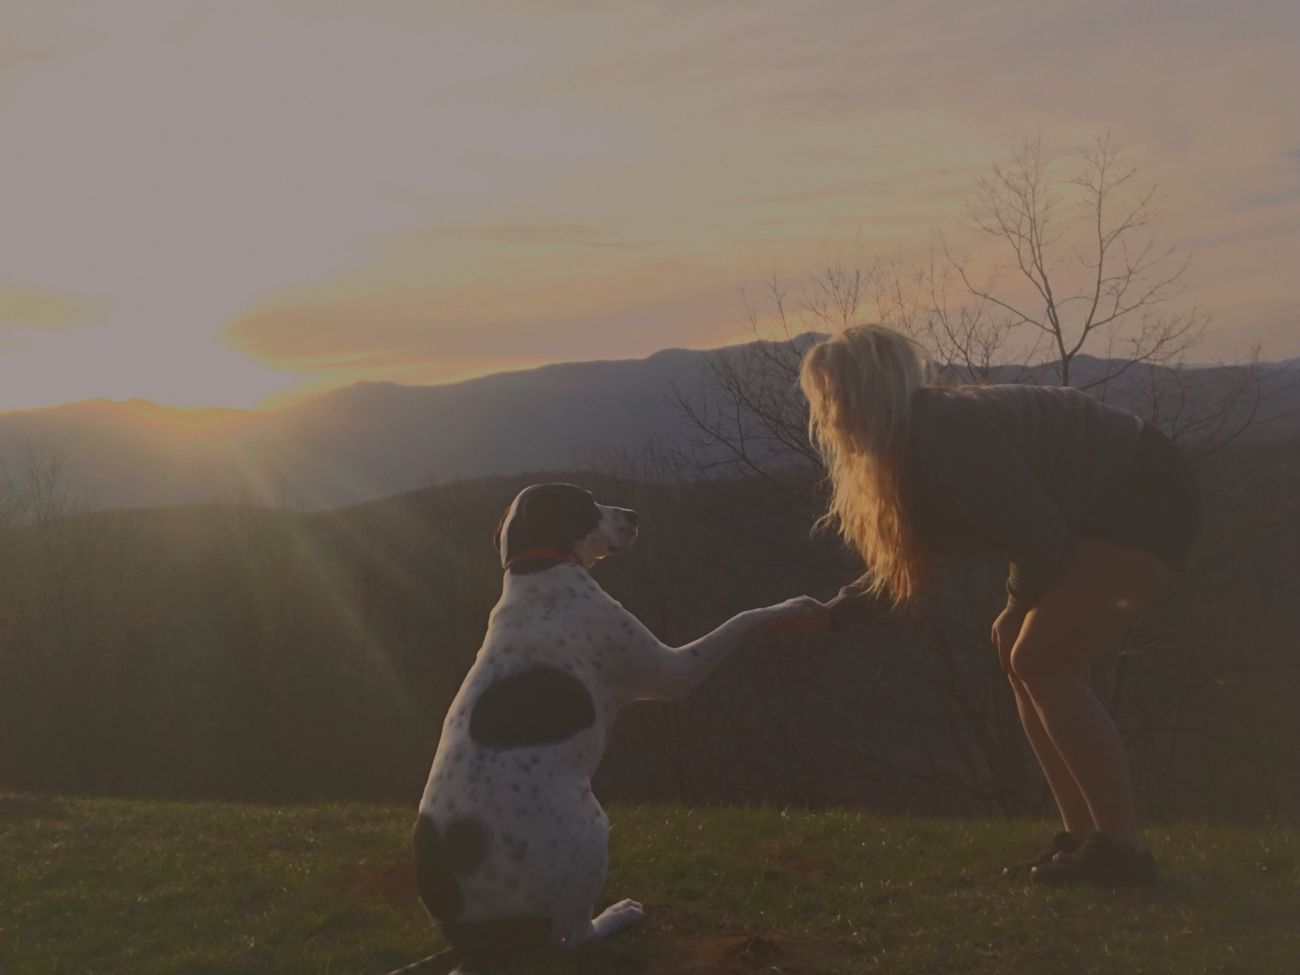 Live For The Story Nature Togetherness Landscape Outdoors Dog Sunset Mountain Sky Taking Photos Dogs Of EyeEm Goodvibes Summer Beautiful Enjoying Life Adventure Blond Hair Summer Vibes Highfive Animal Themes Summerstories